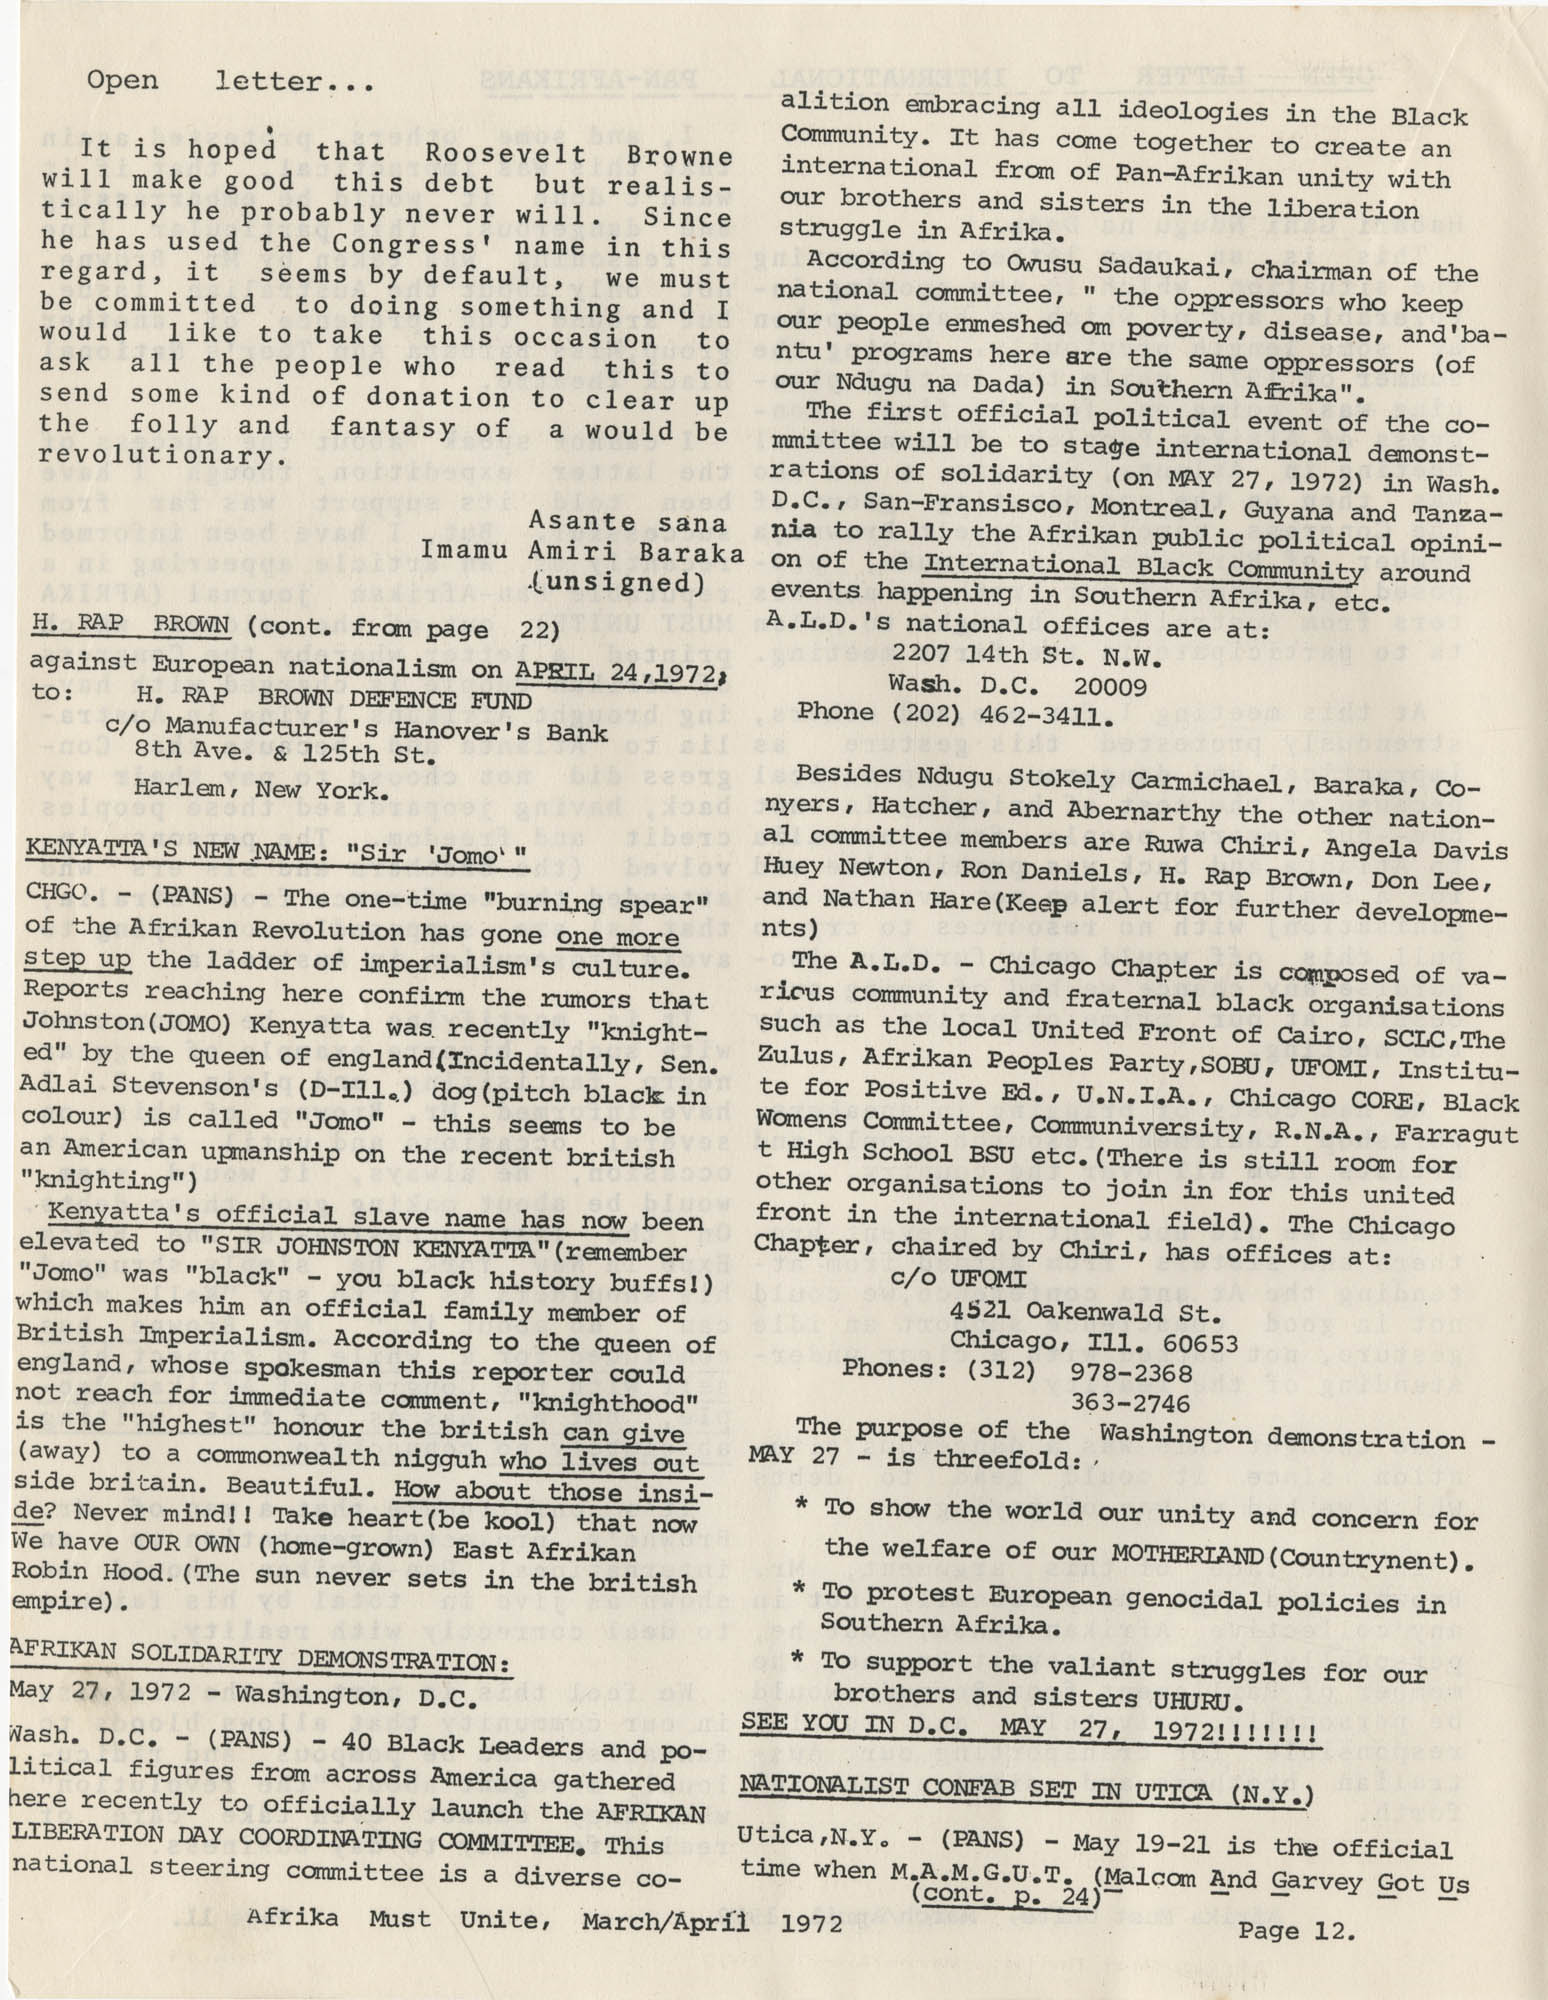 Afrika Must Unite, Vol. 1, No. 4, Page 12